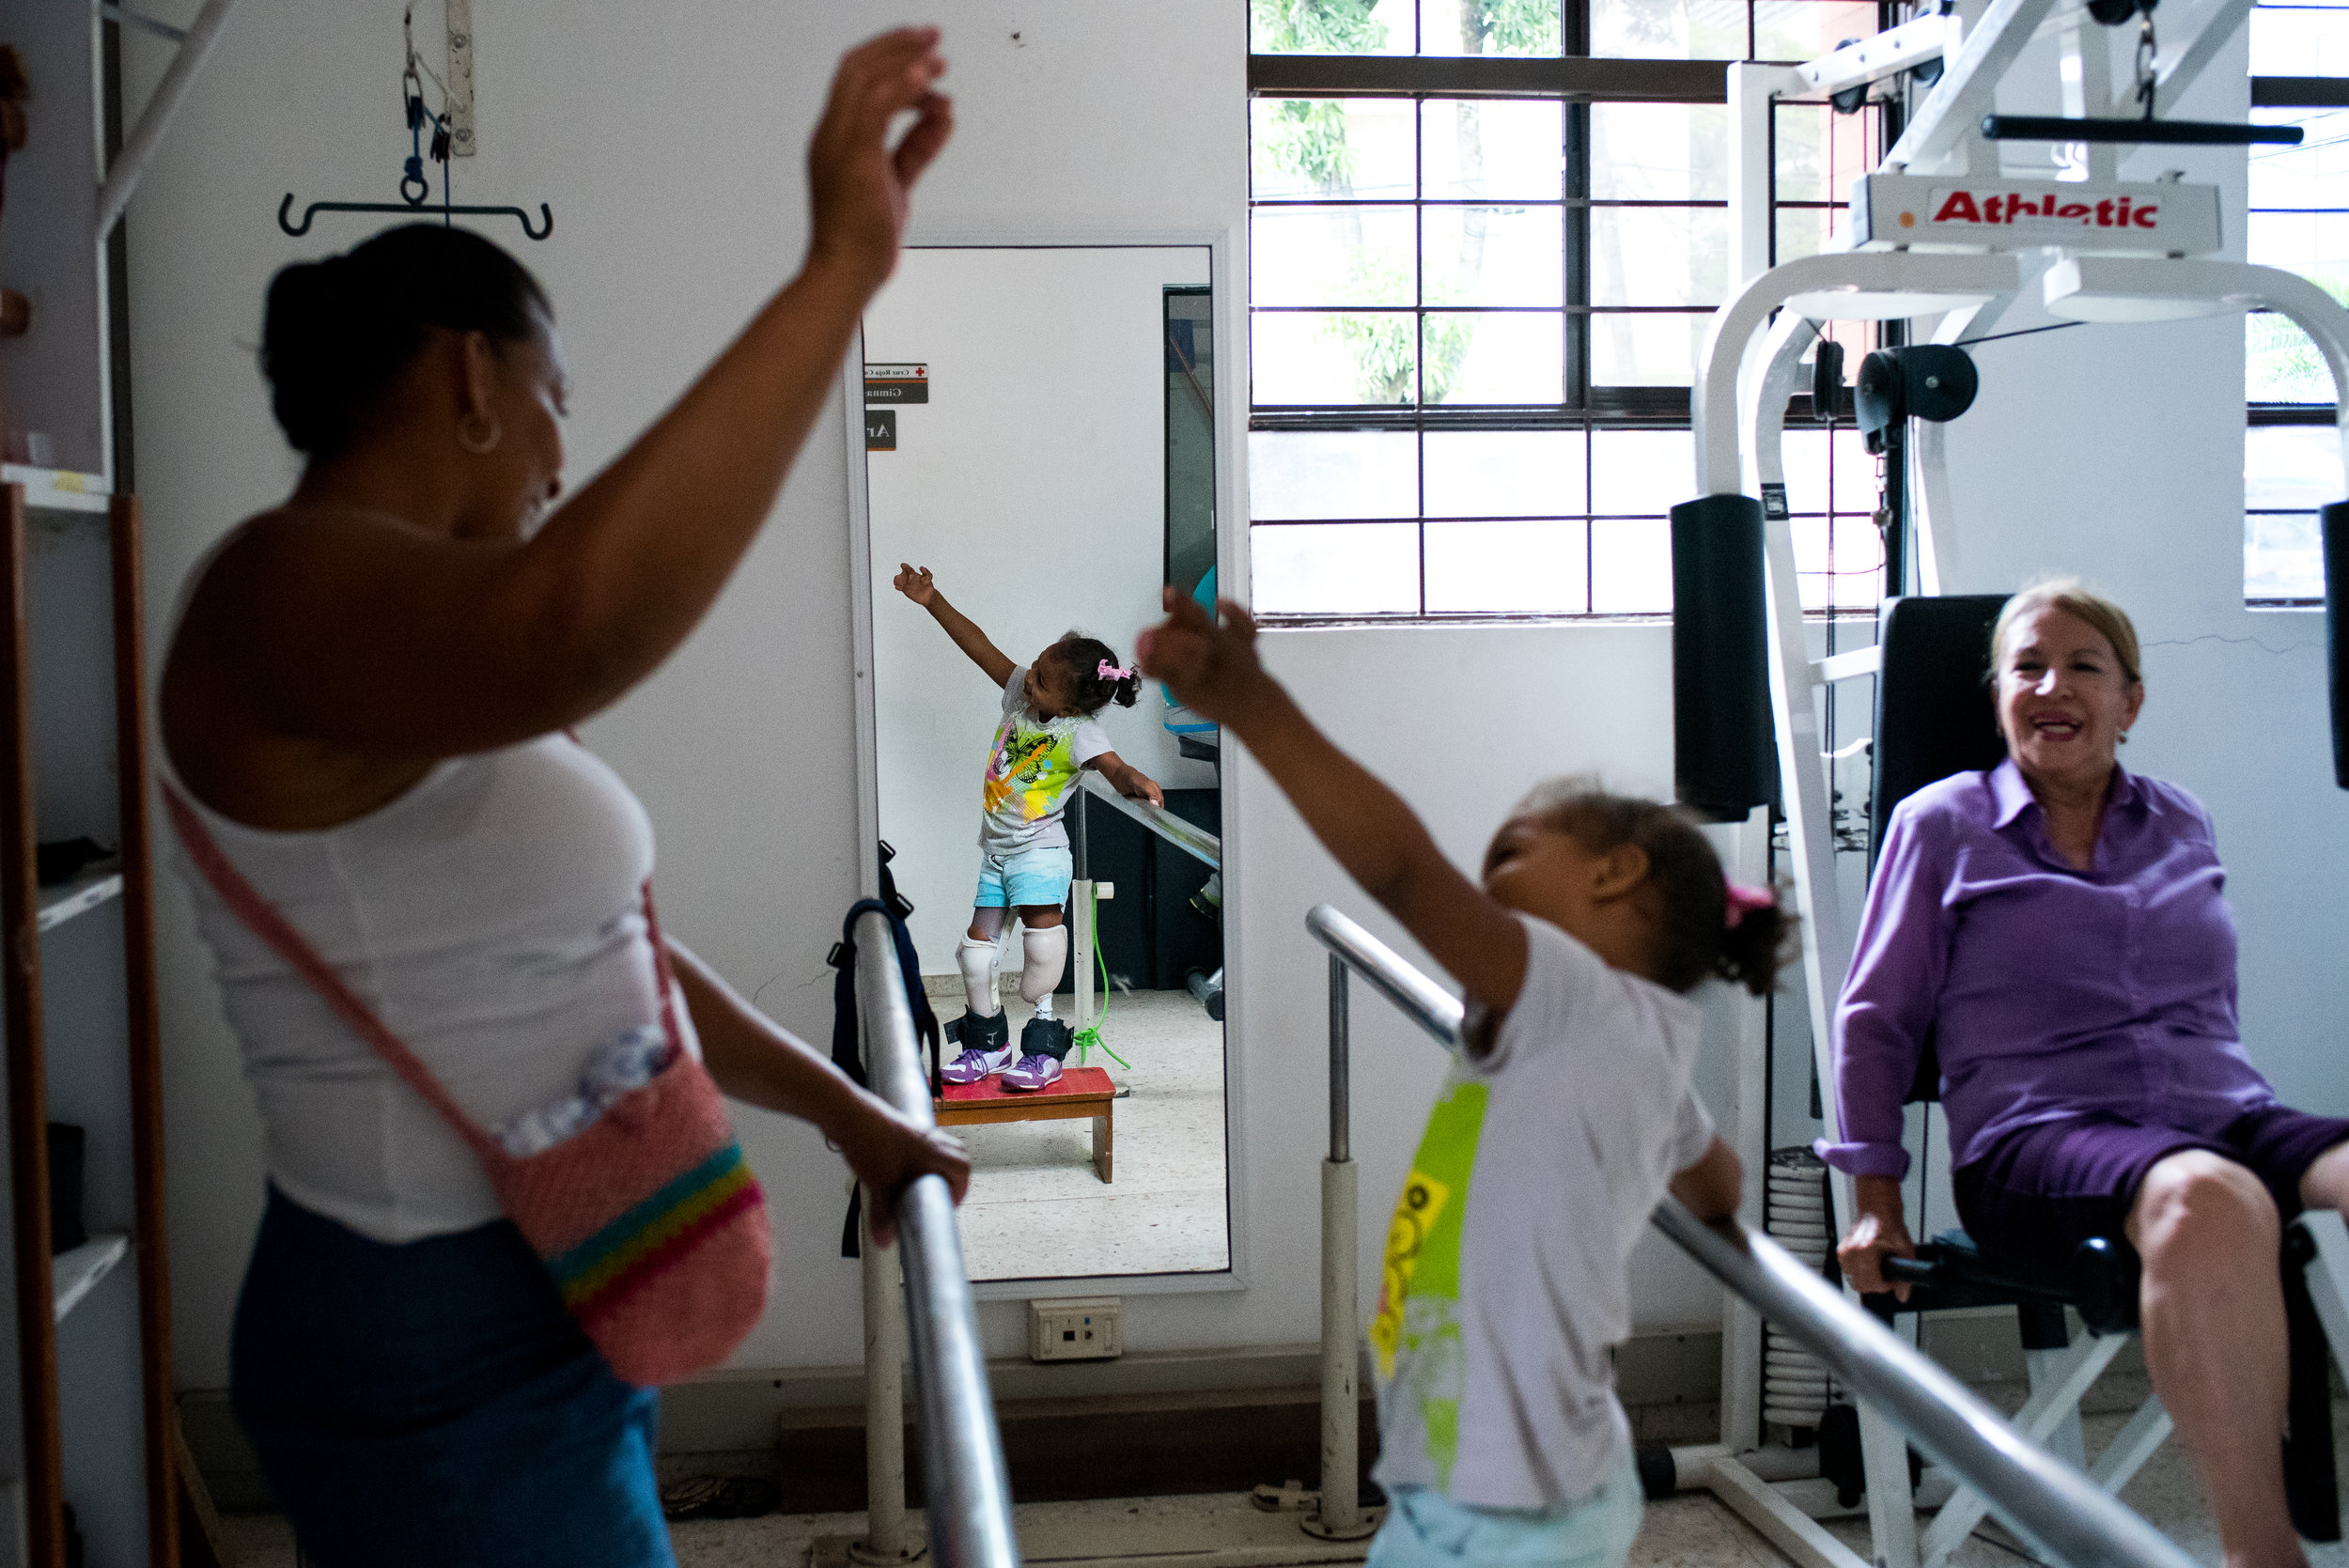 Ebony and Julia during one of her physical therapy sessions at the CRUZ ROJA, where she learns to walk with her prosthetic legs.